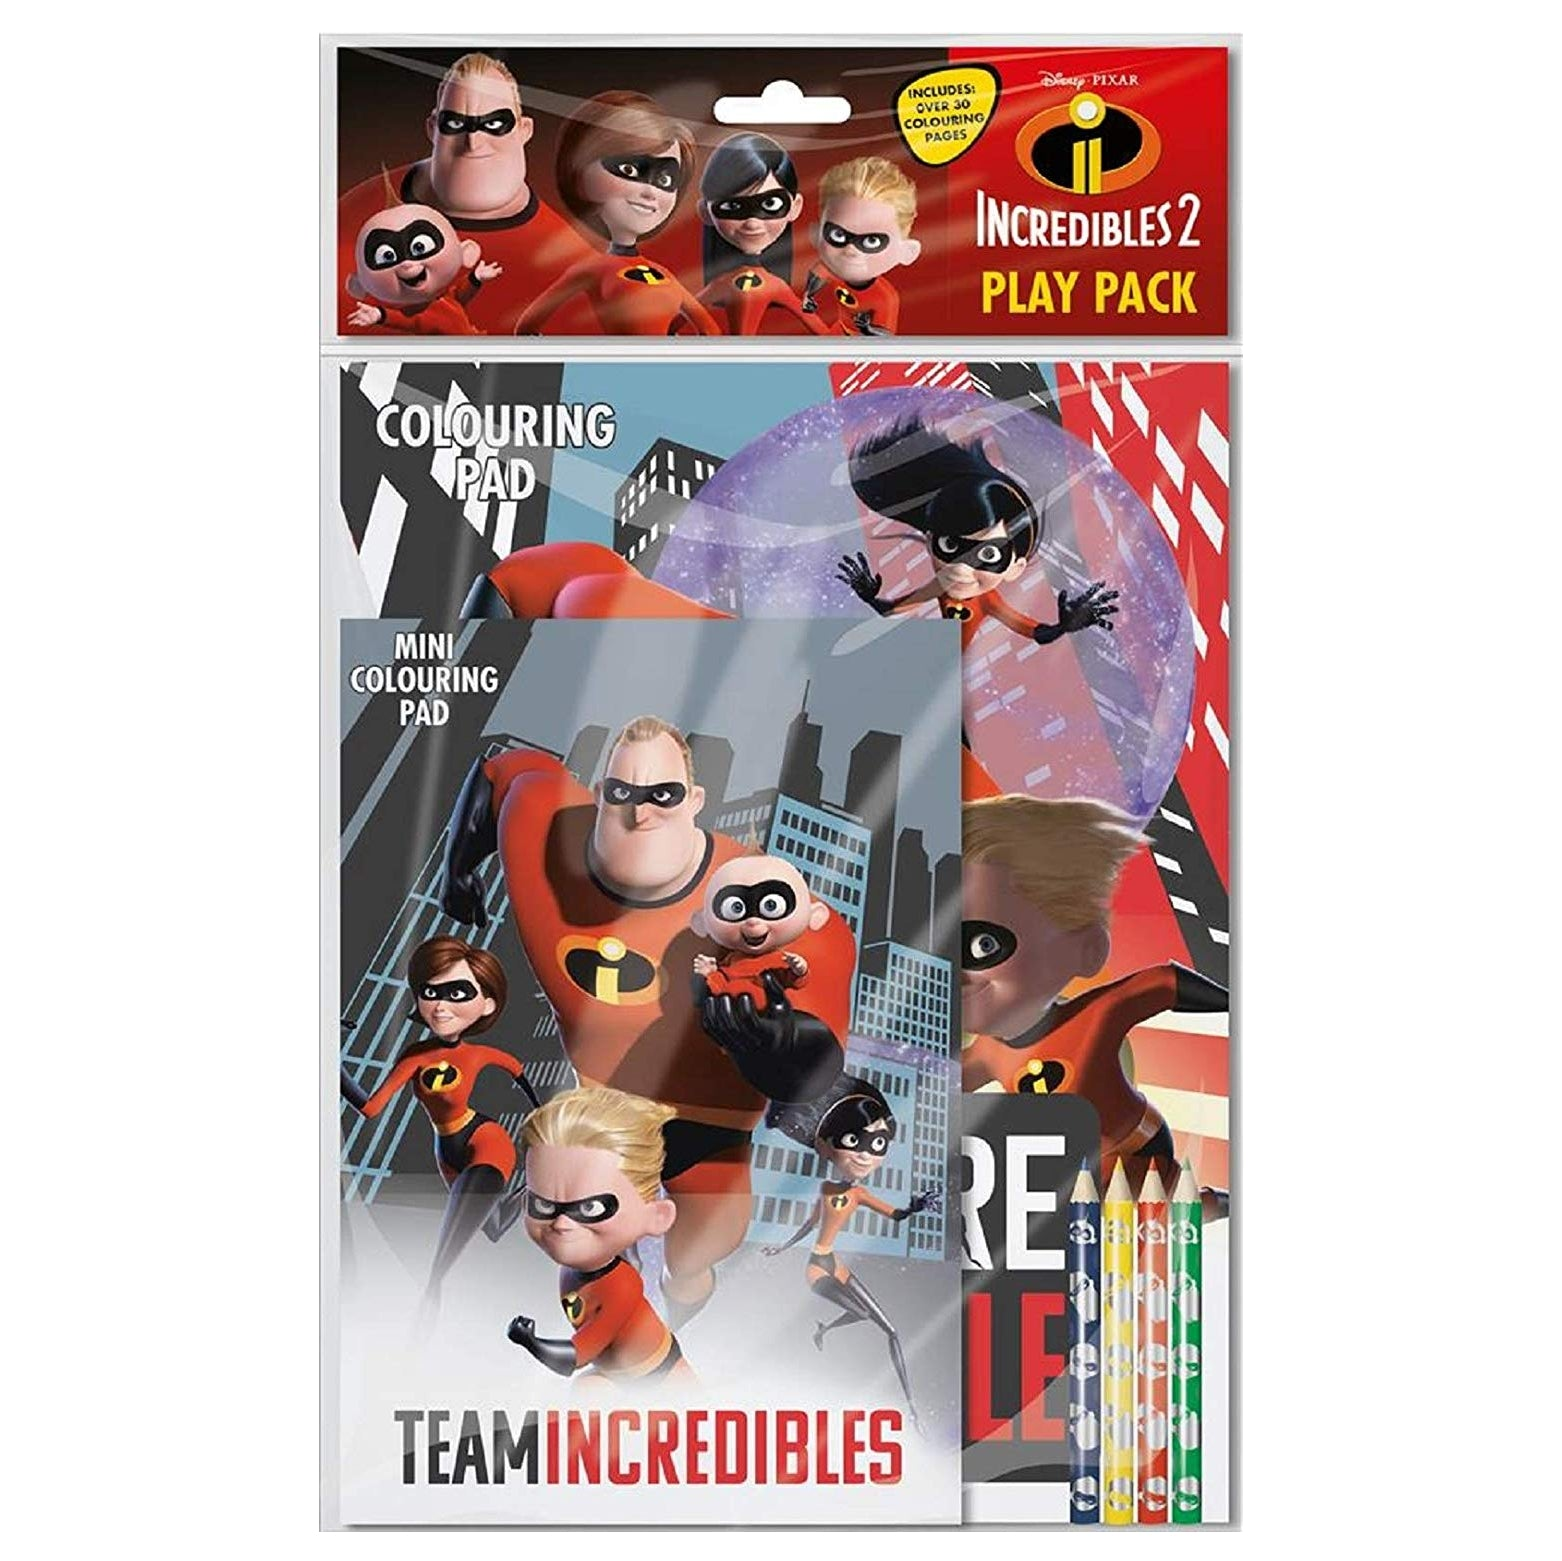 Incredibles 2 Play Pack